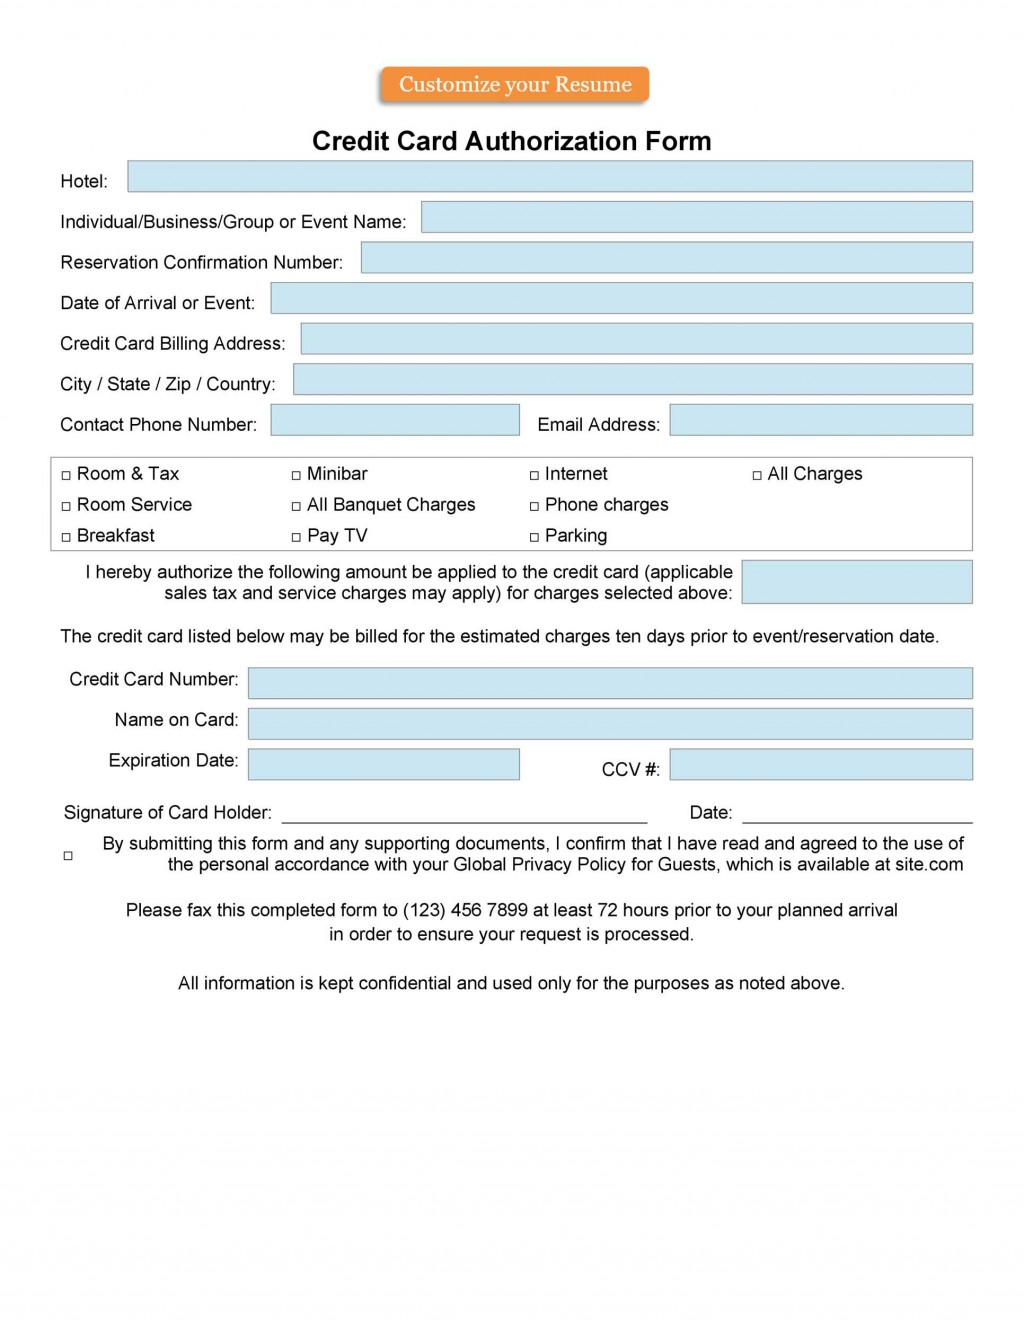 009 Impressive Credit Card Usage Request Form Template Example Large